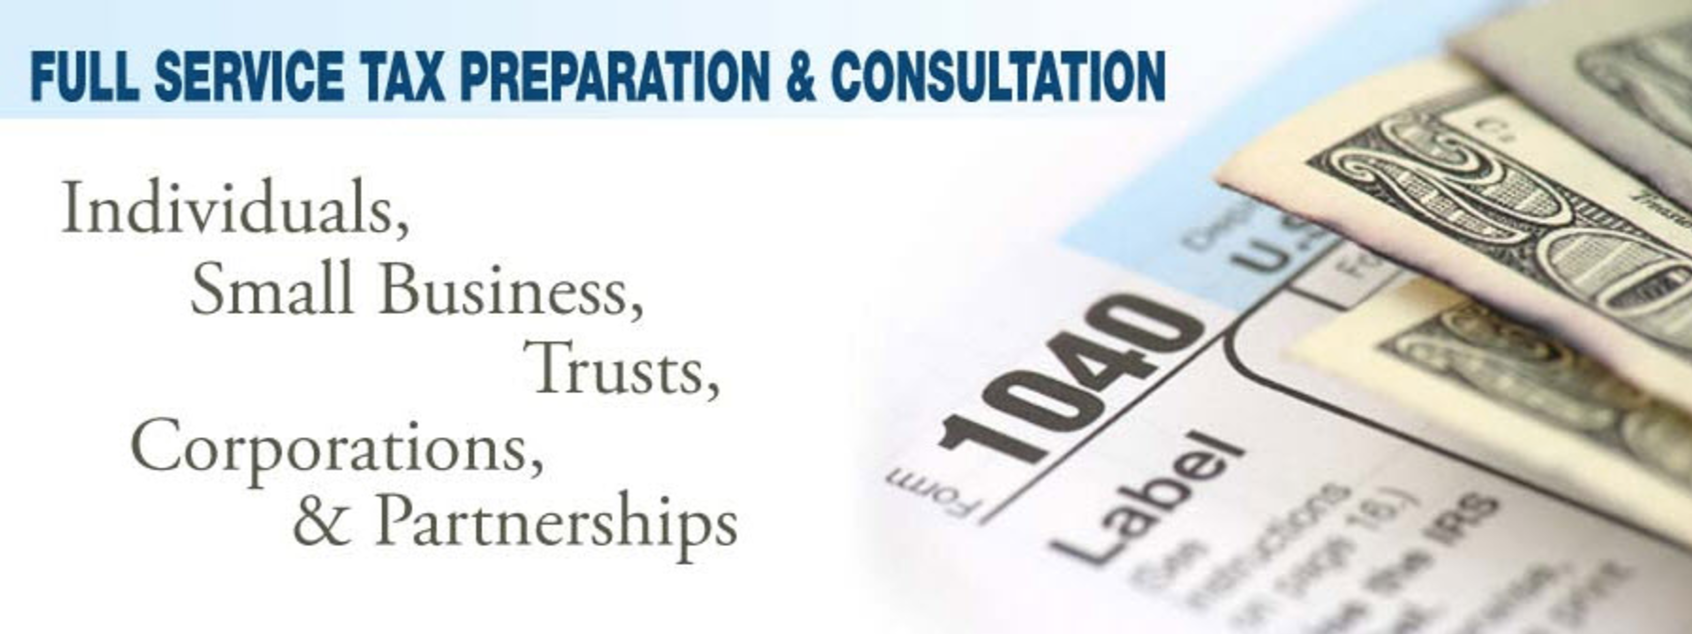 tax-preparation-corporate-personal-page